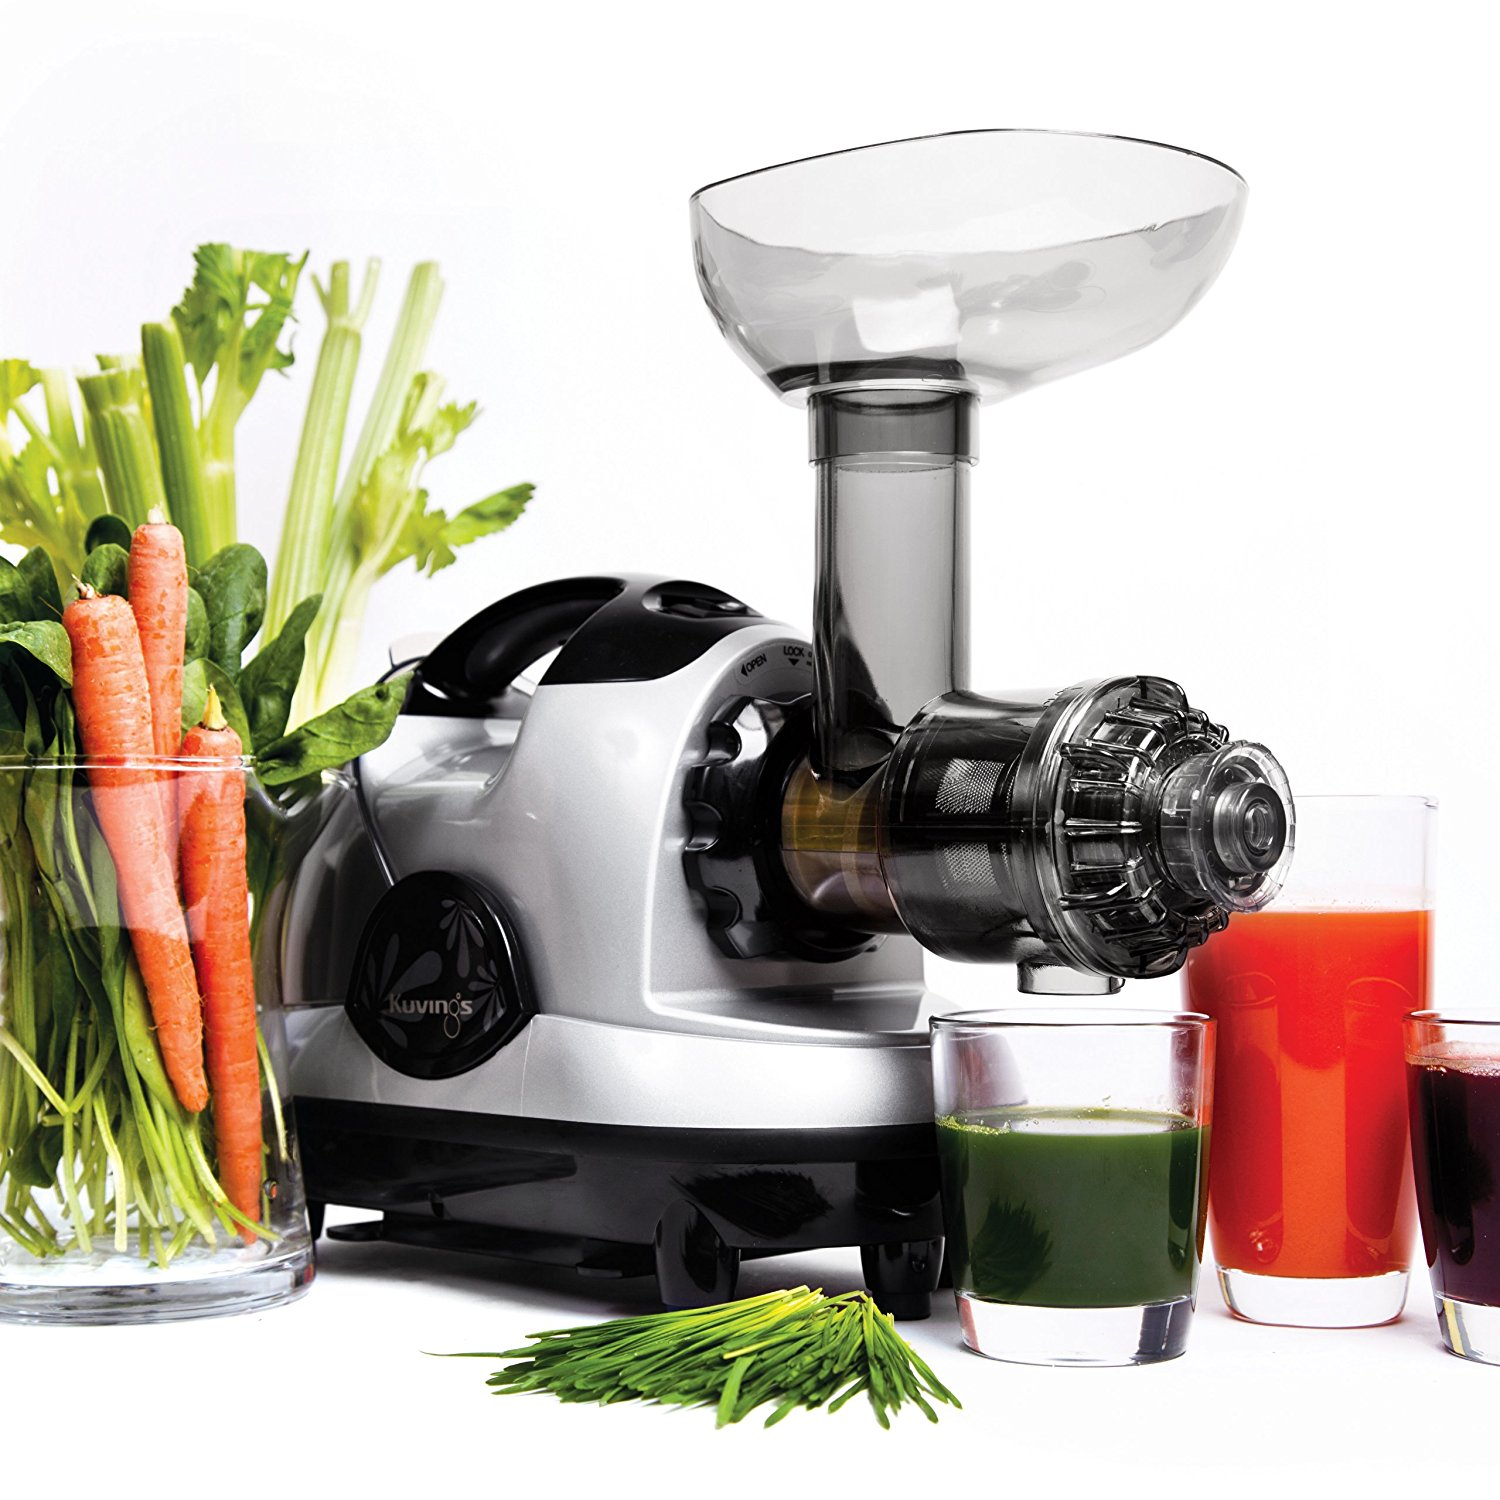 Slow Juicer Reviews 2018 : Best Masticating Juicer 2018: 10 Best Juicers Reviews & Buying Guide